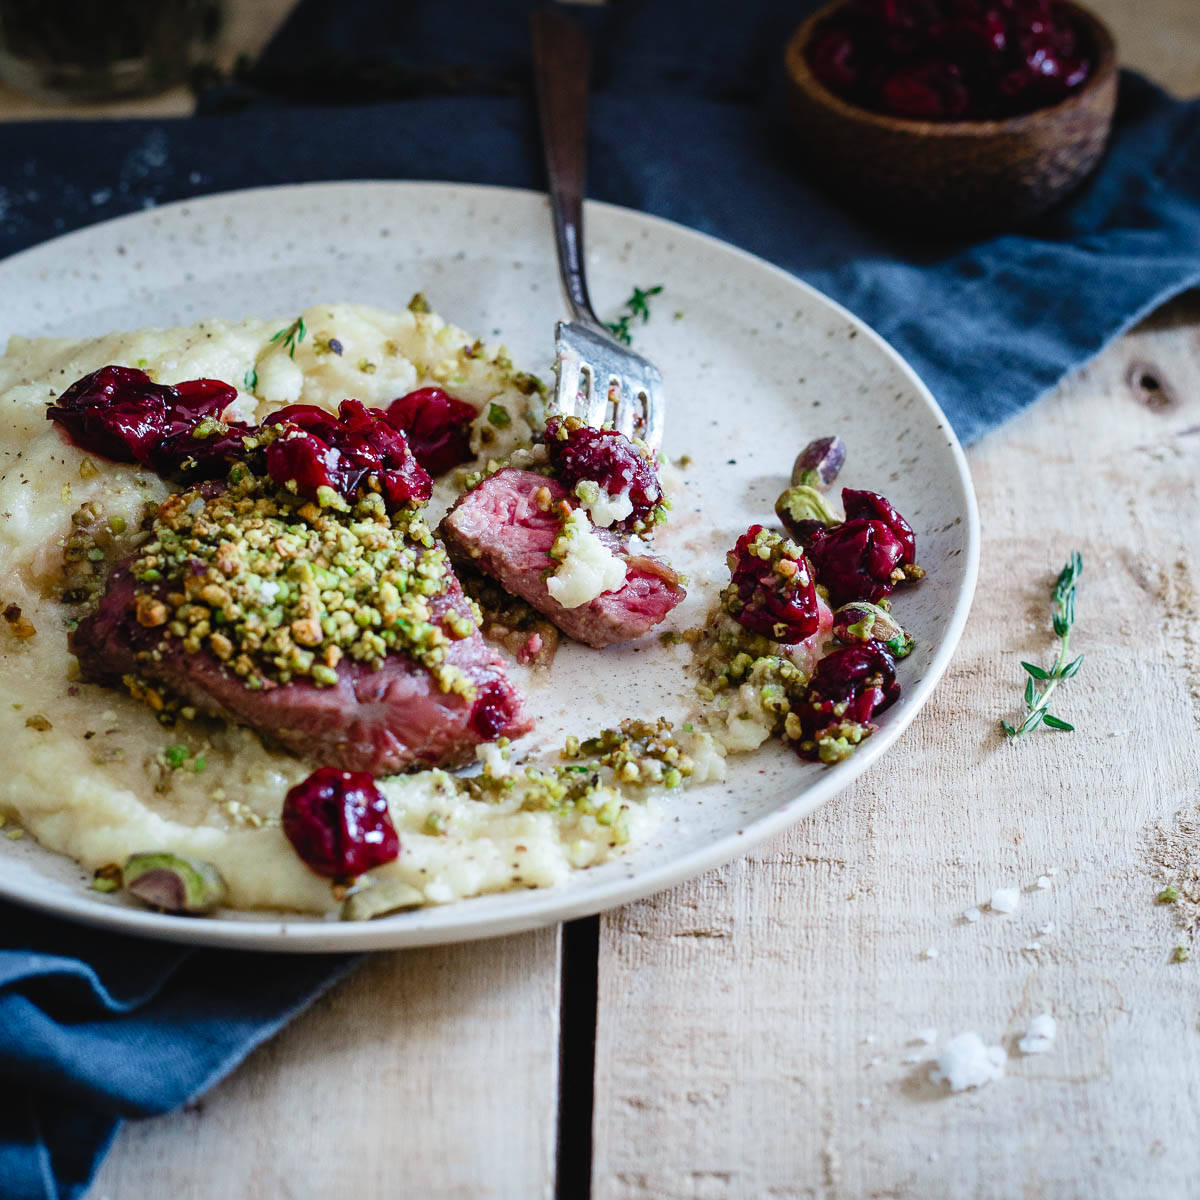 A Valentine's Day dinner better than any restaurant, pistachio crusted lamb chops with red wine cherries and parmesan polenta.